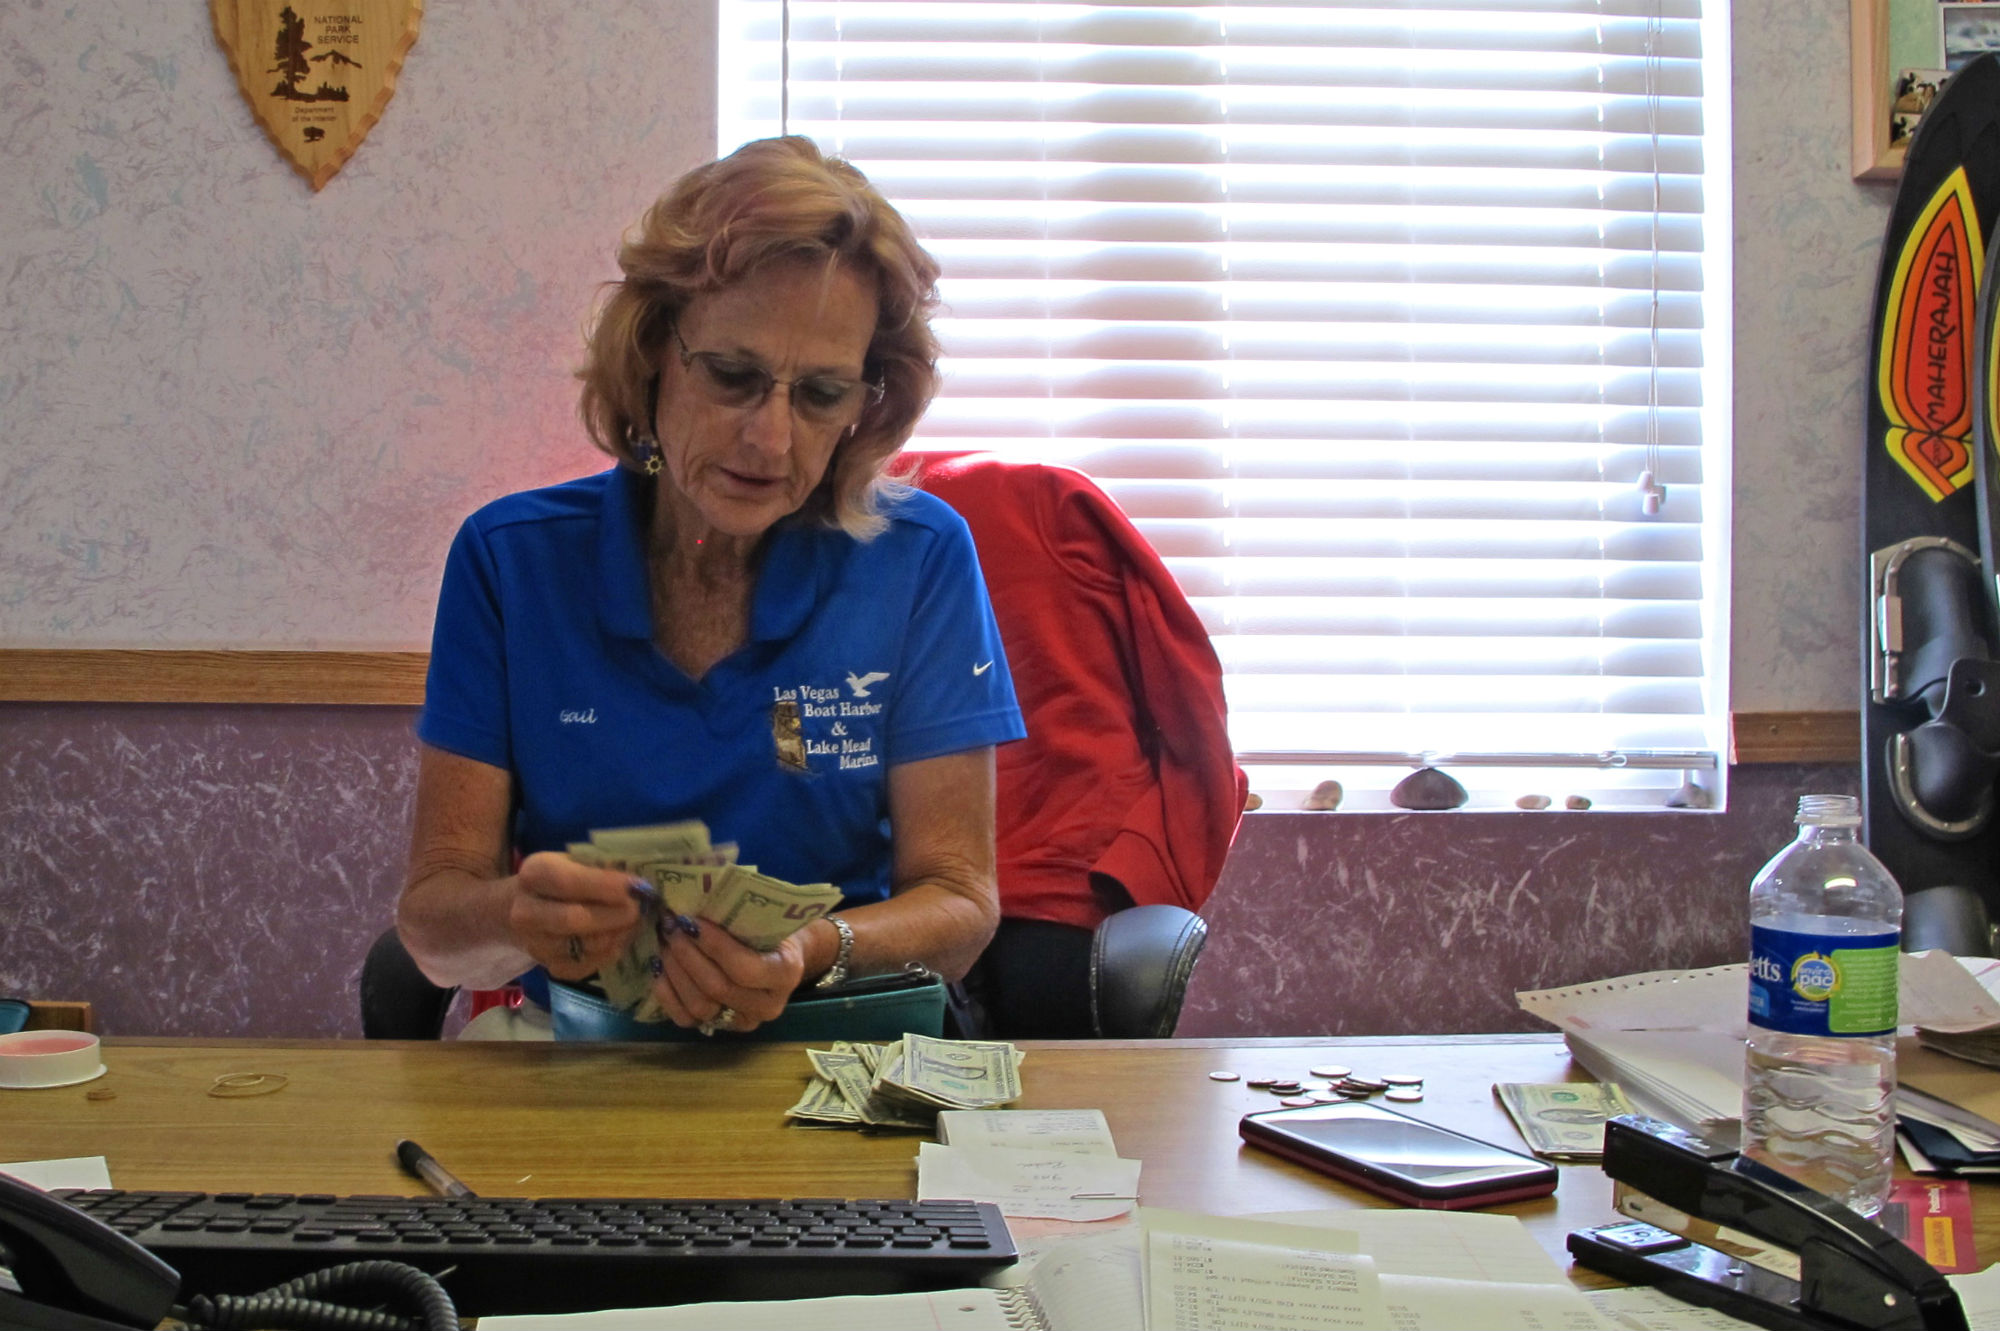 At the Grippentog's second marina, Gail Gripentog, Erin's mother, counts cash. As Mead shrinks, the Grippentogs must move their marina further inland, a process that costs approximately $100,000. In 2003, a particularly dry year, they moved the marina seven times.